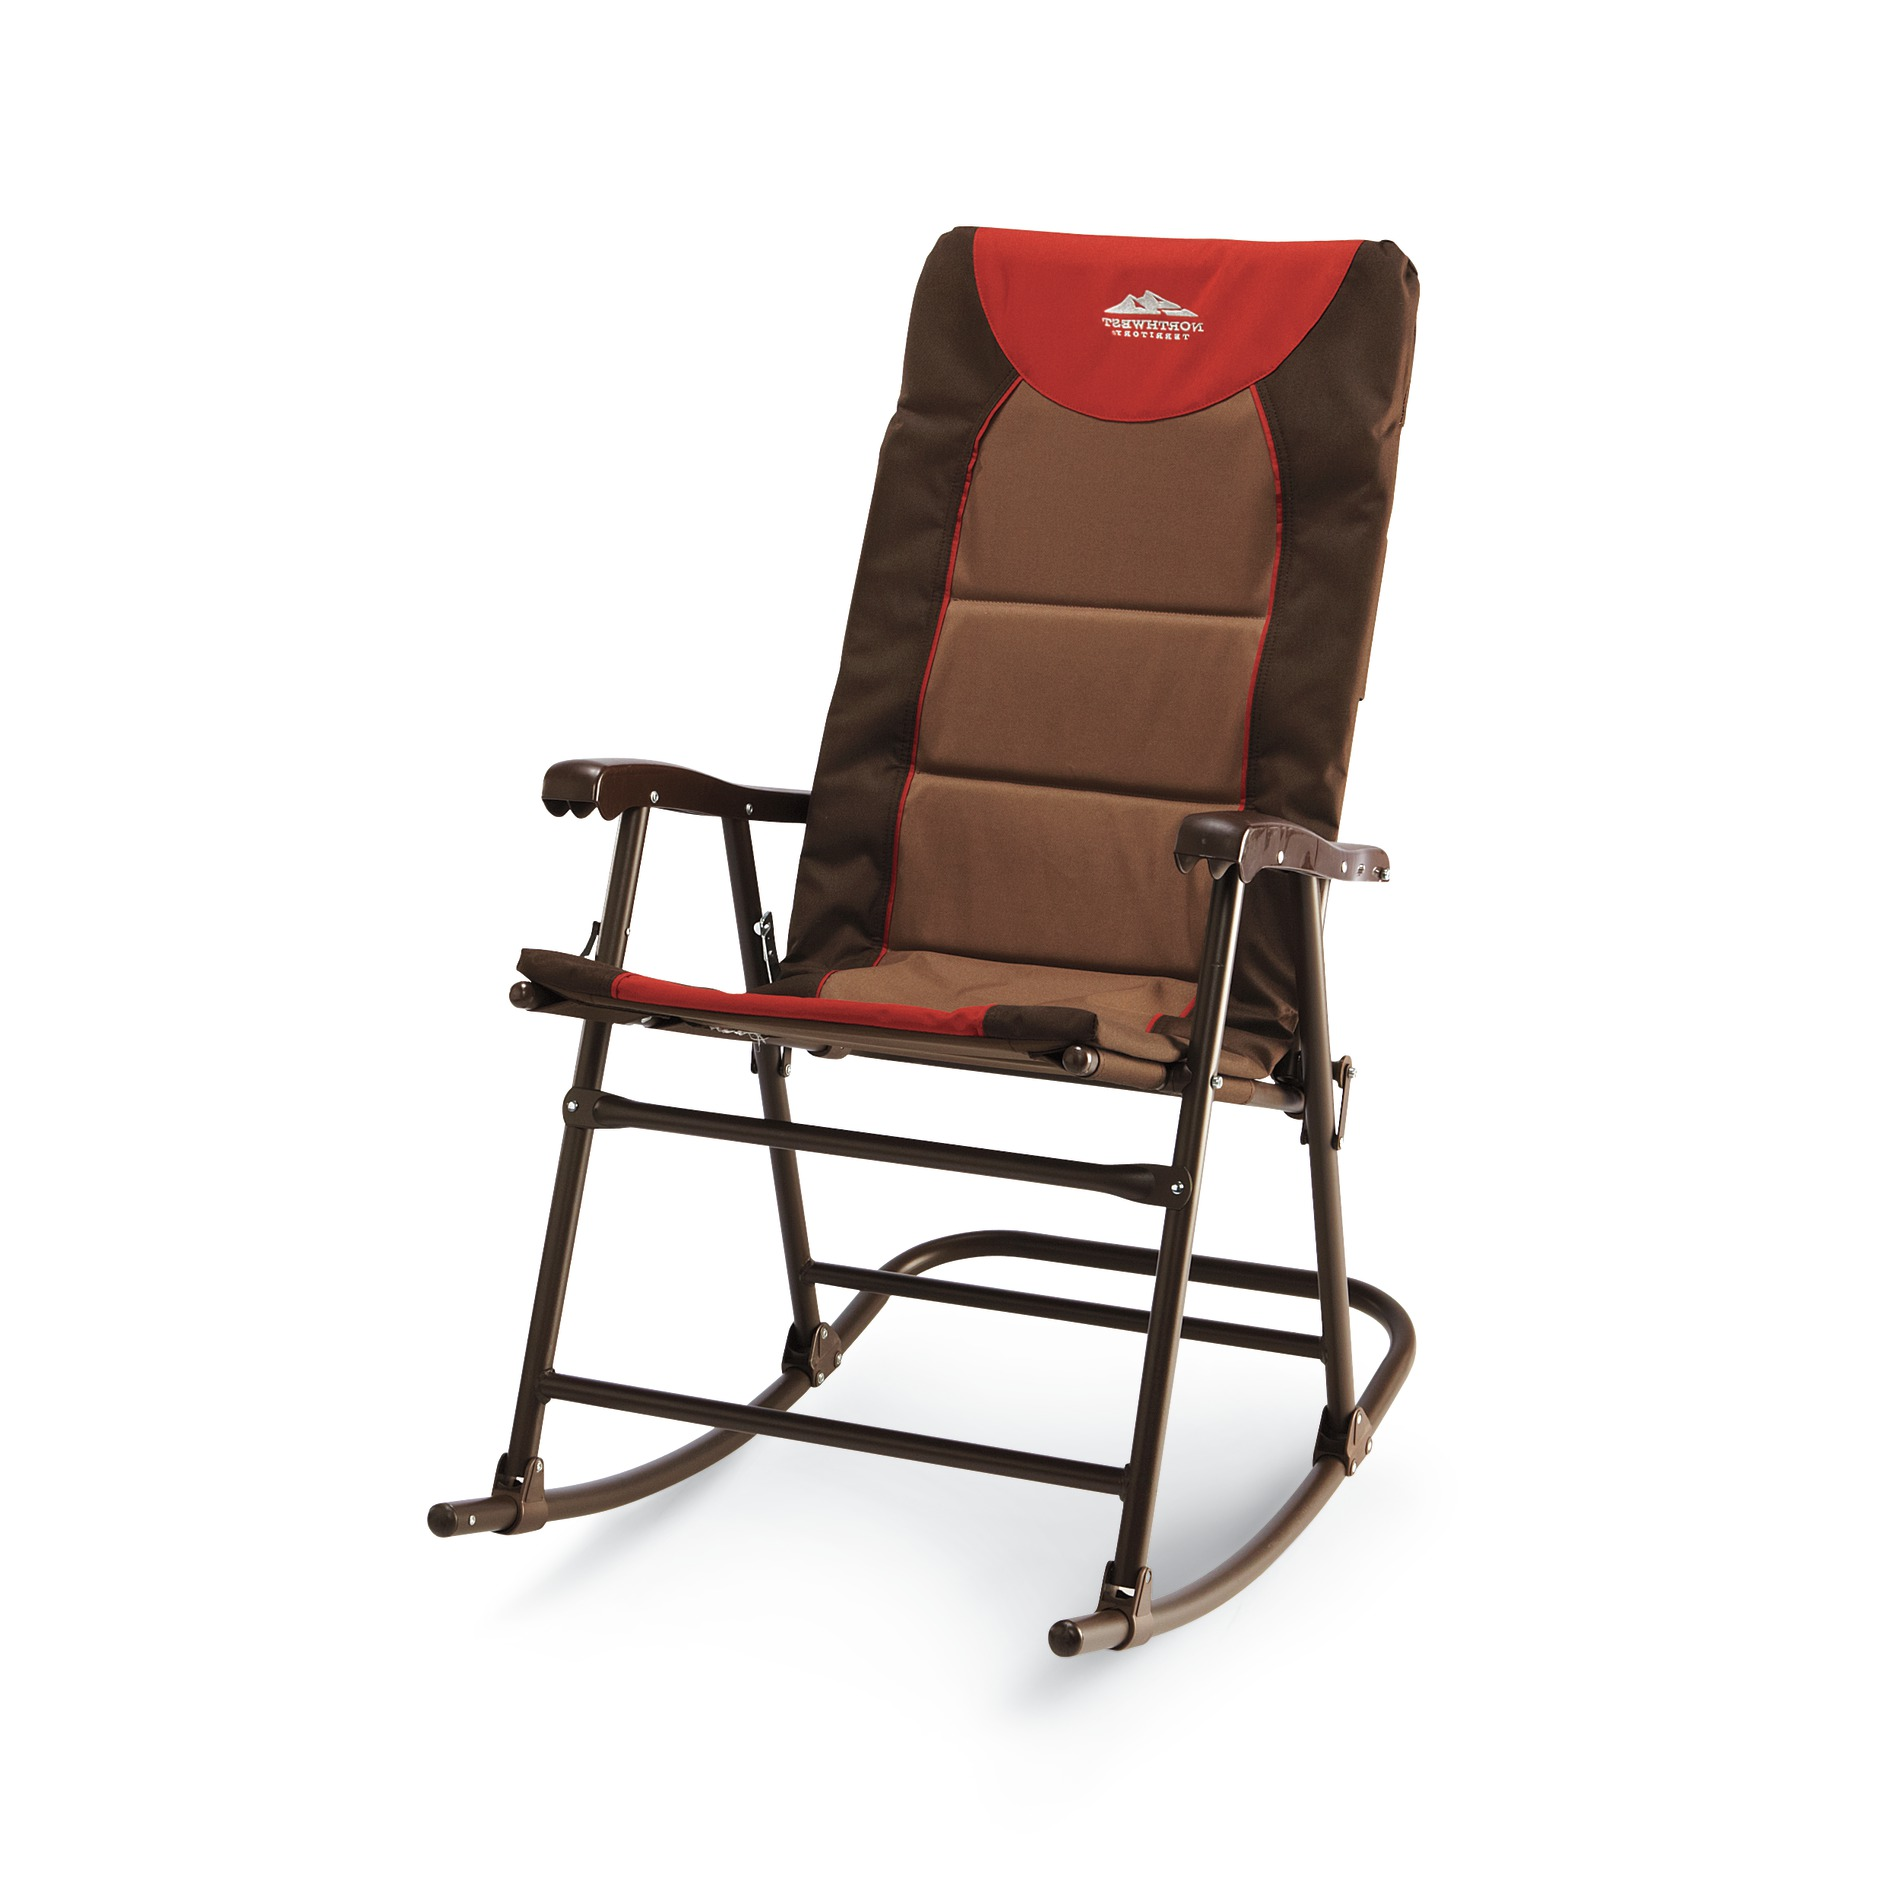 Camper Chairs Rocking Chair Folding Outdoor Camping Patio Comfortable